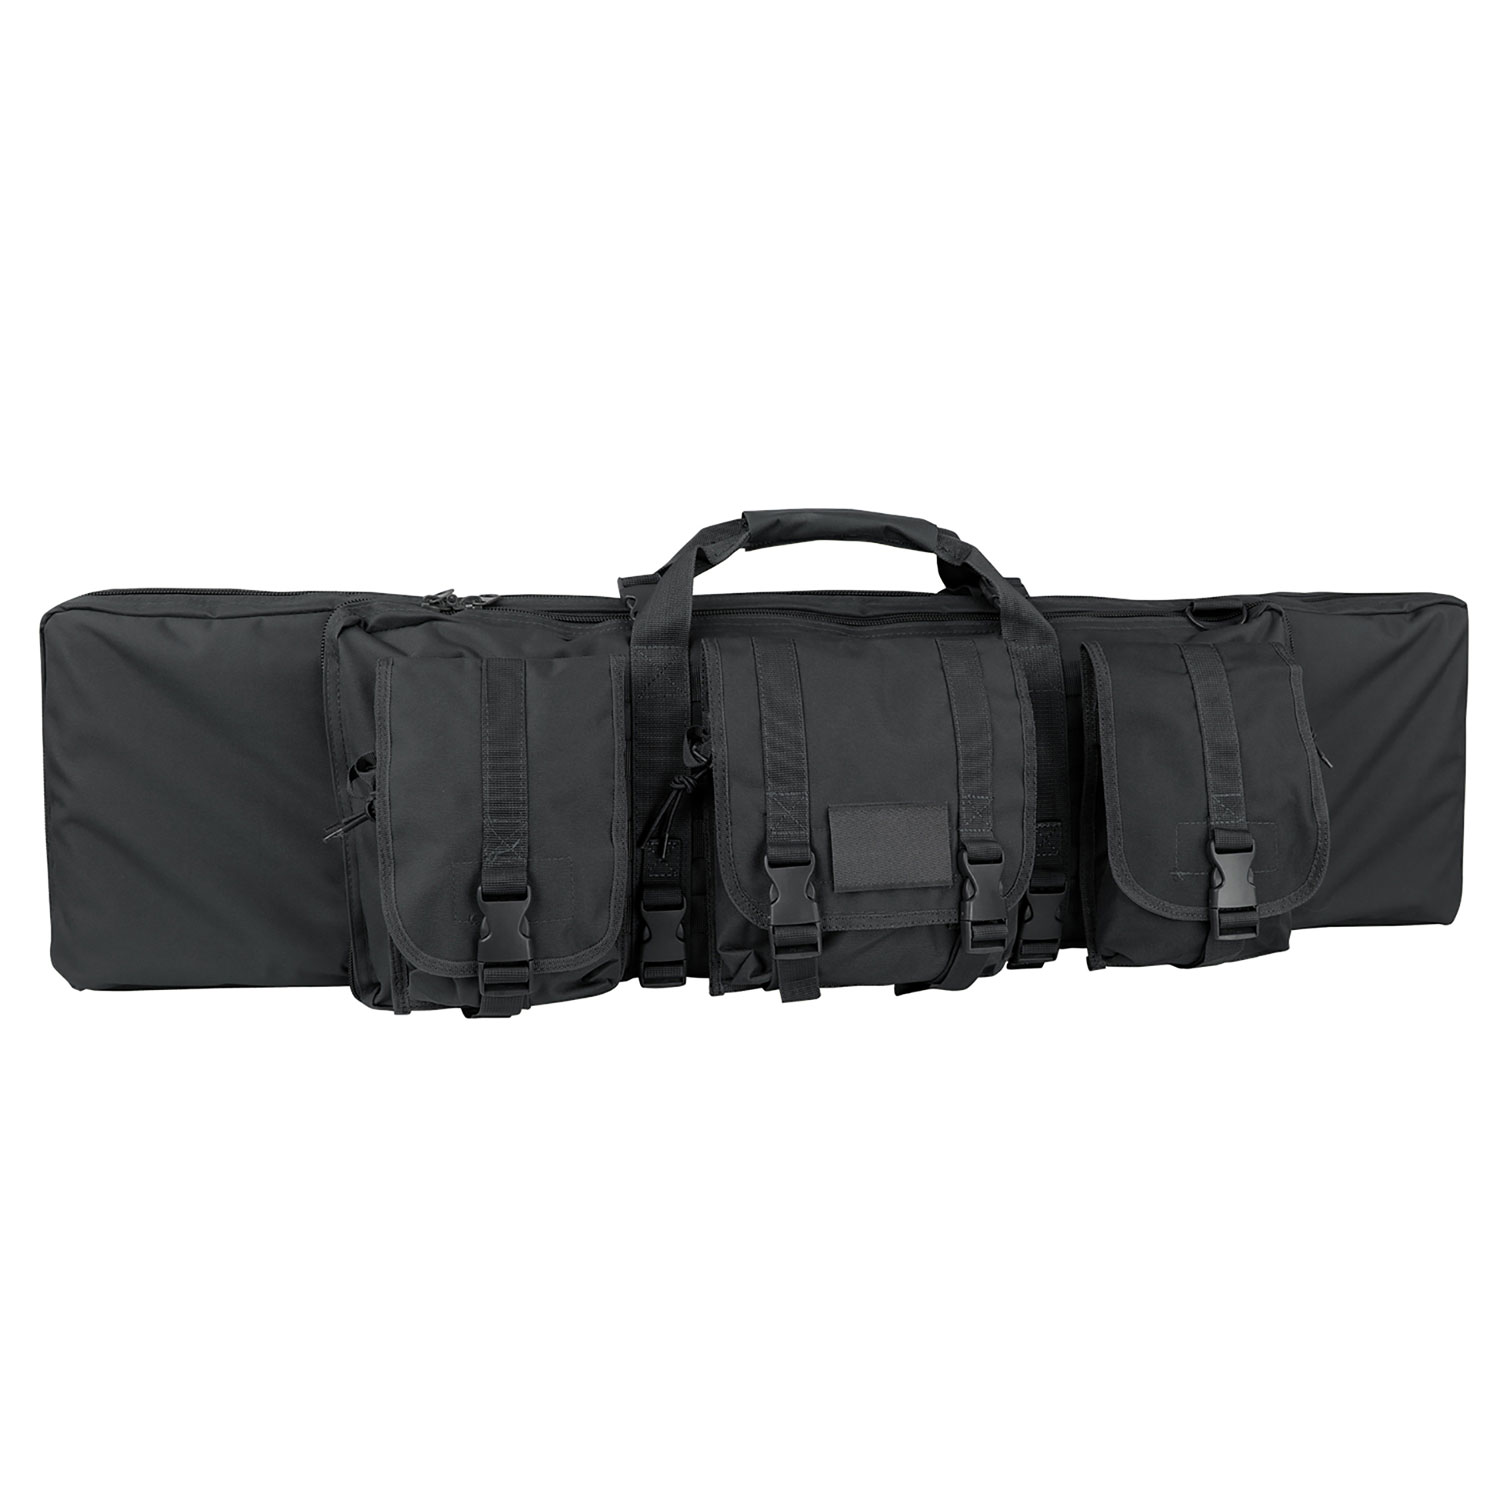 Condor SoftSided MOLLE Rifle Case